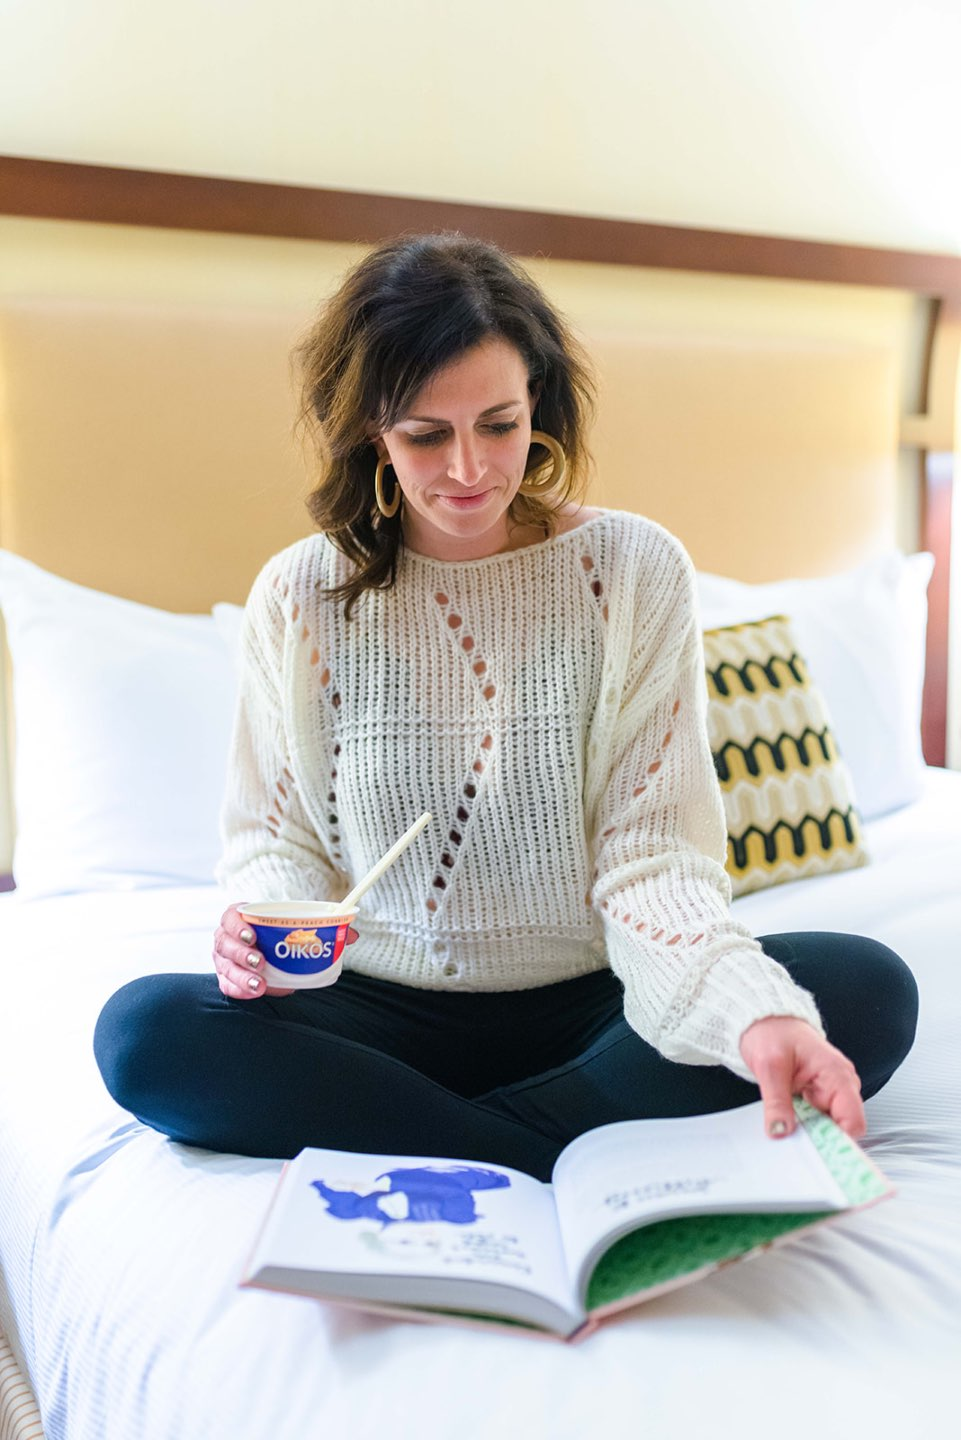 A Quick Dessert Idea that Will Satisfy your Cravings - I'm Fixin' To - @mbg0112 | Oikos, a quick desert idea that will satisfy your sweet cravings, featured by top US lifestyle blog, I'm Fixin To: image of a woman eating an Oikos yogurt